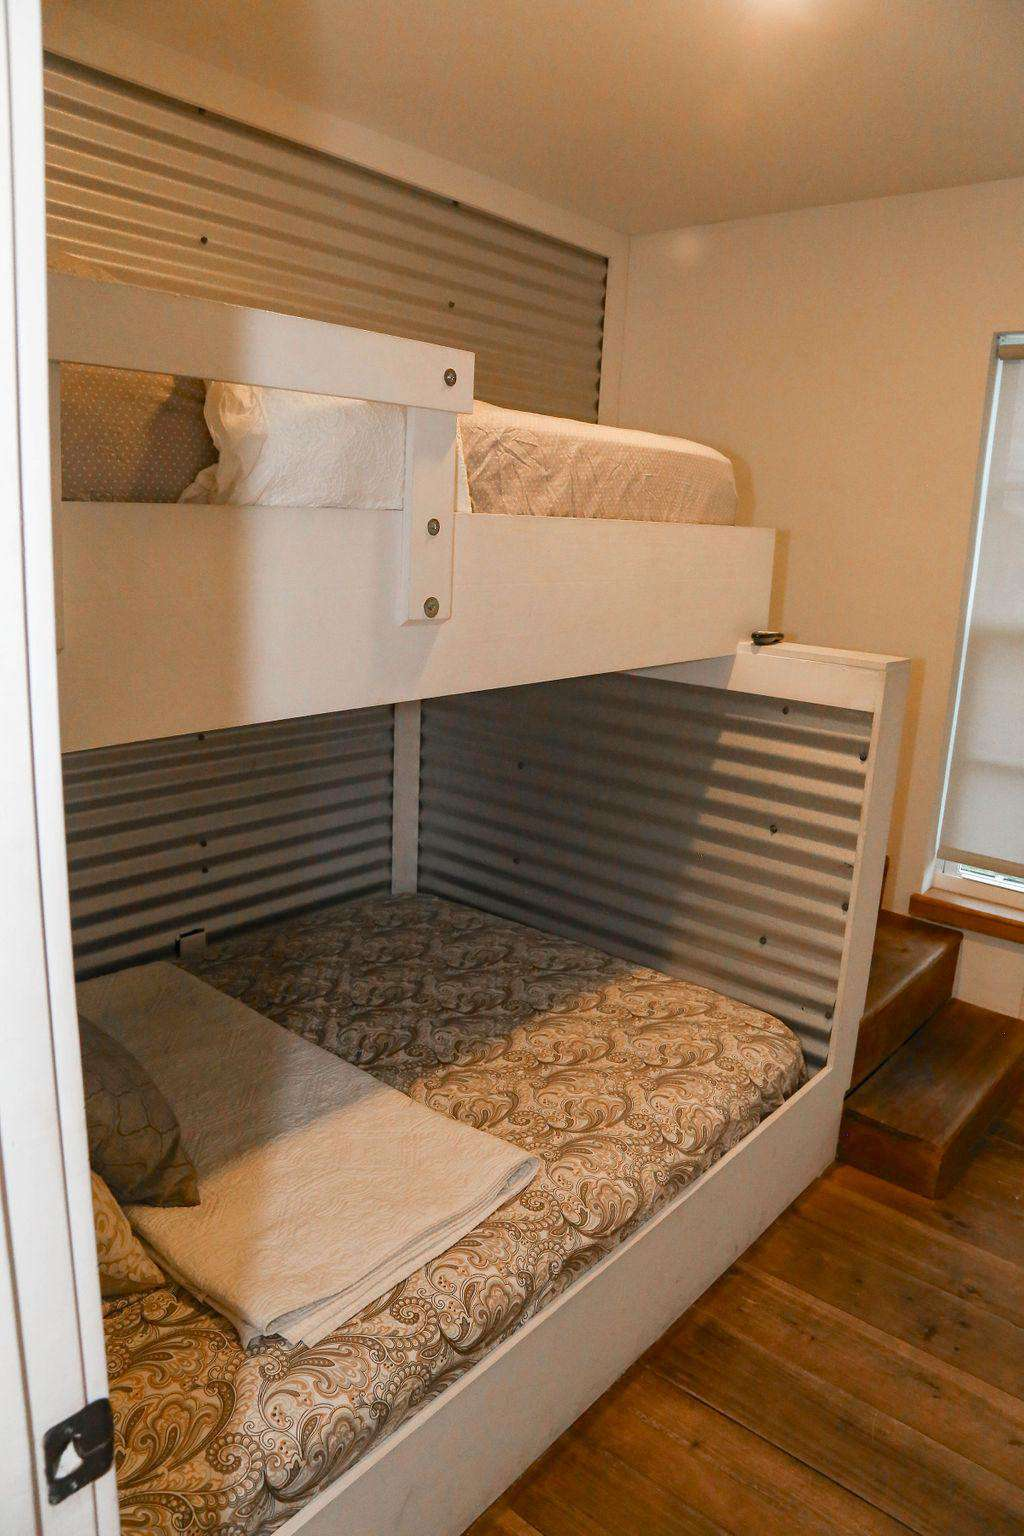 BR # 3 has full bed/twin bunk, flat screen